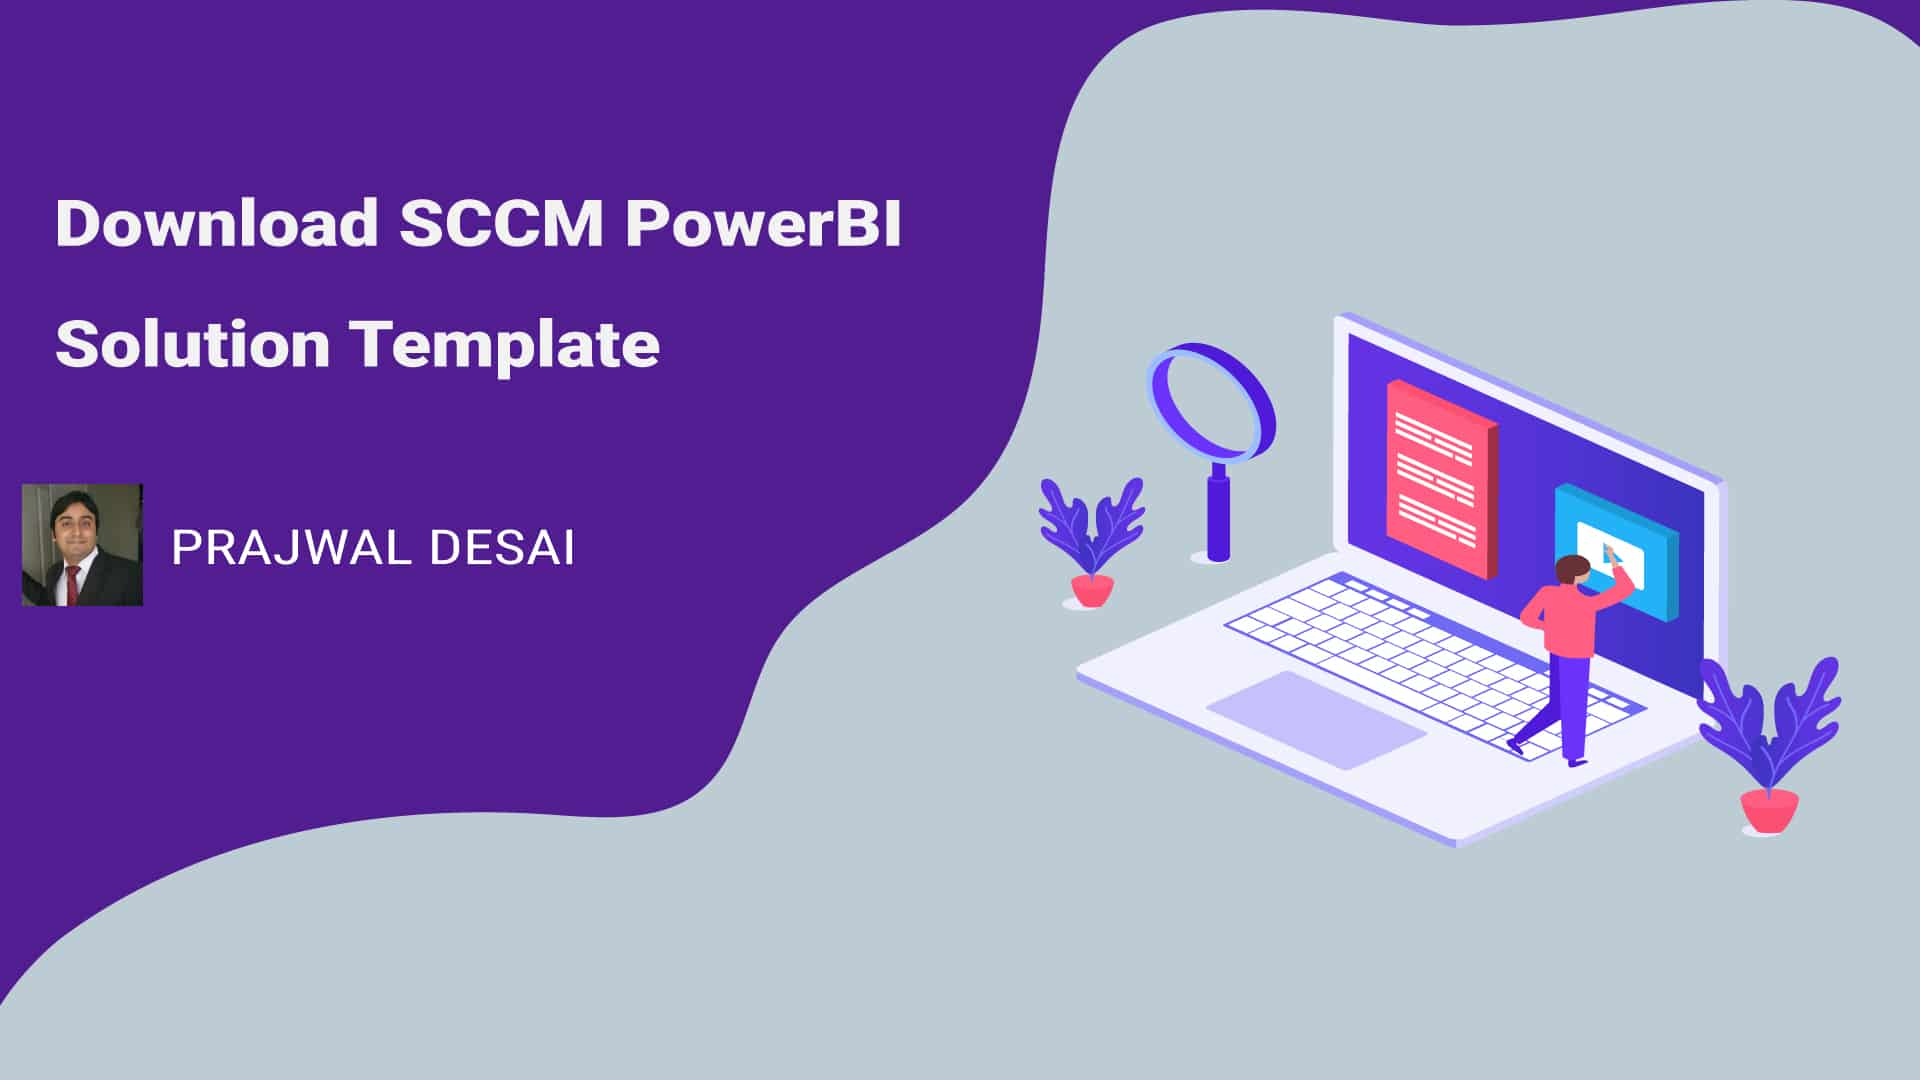 Download SCCM Power BI Solution Template